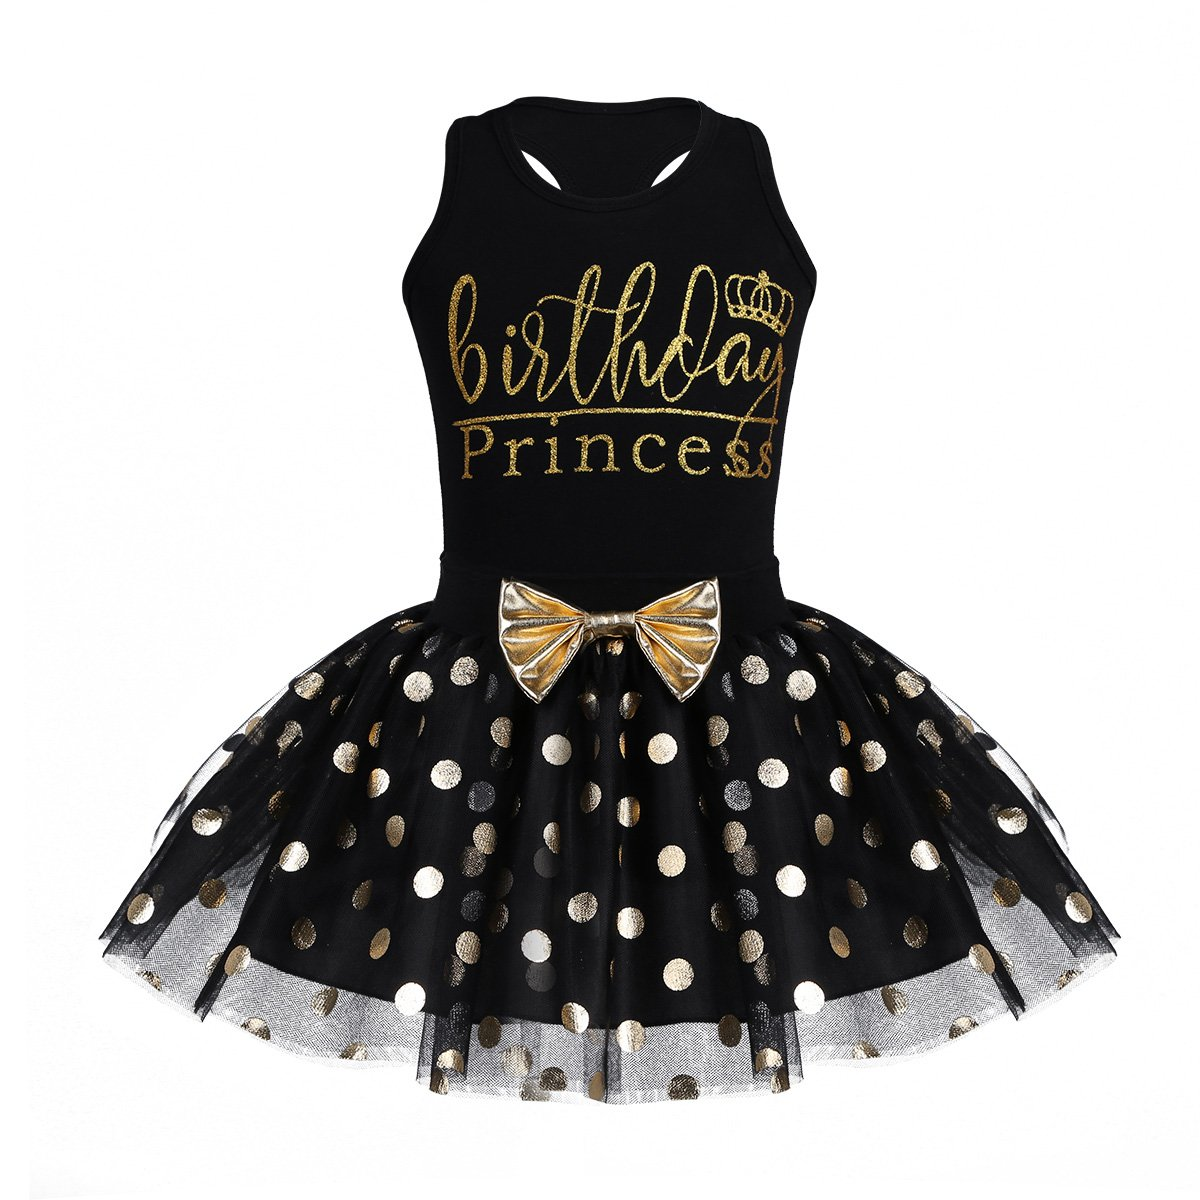 MSemis Toddlers Baby Girls Birthday Party Outfits Sleeveless T-Shirt Tops Vest with Shiny Polka Dots Tutu Skirt Set